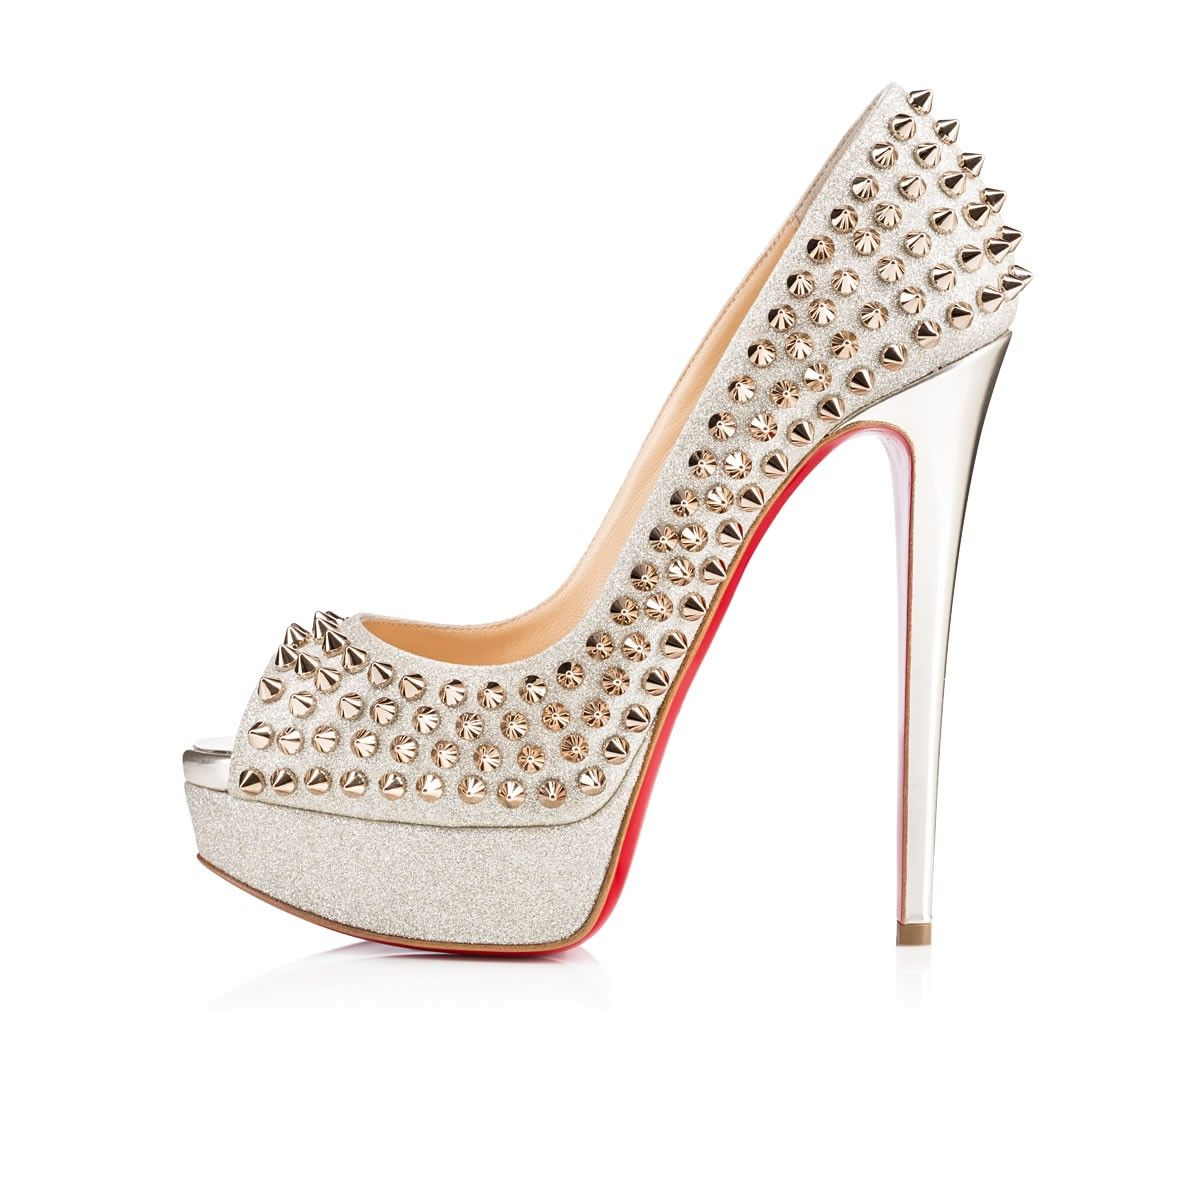 christian louboutin peep toe pumps lady 150mm spikes black